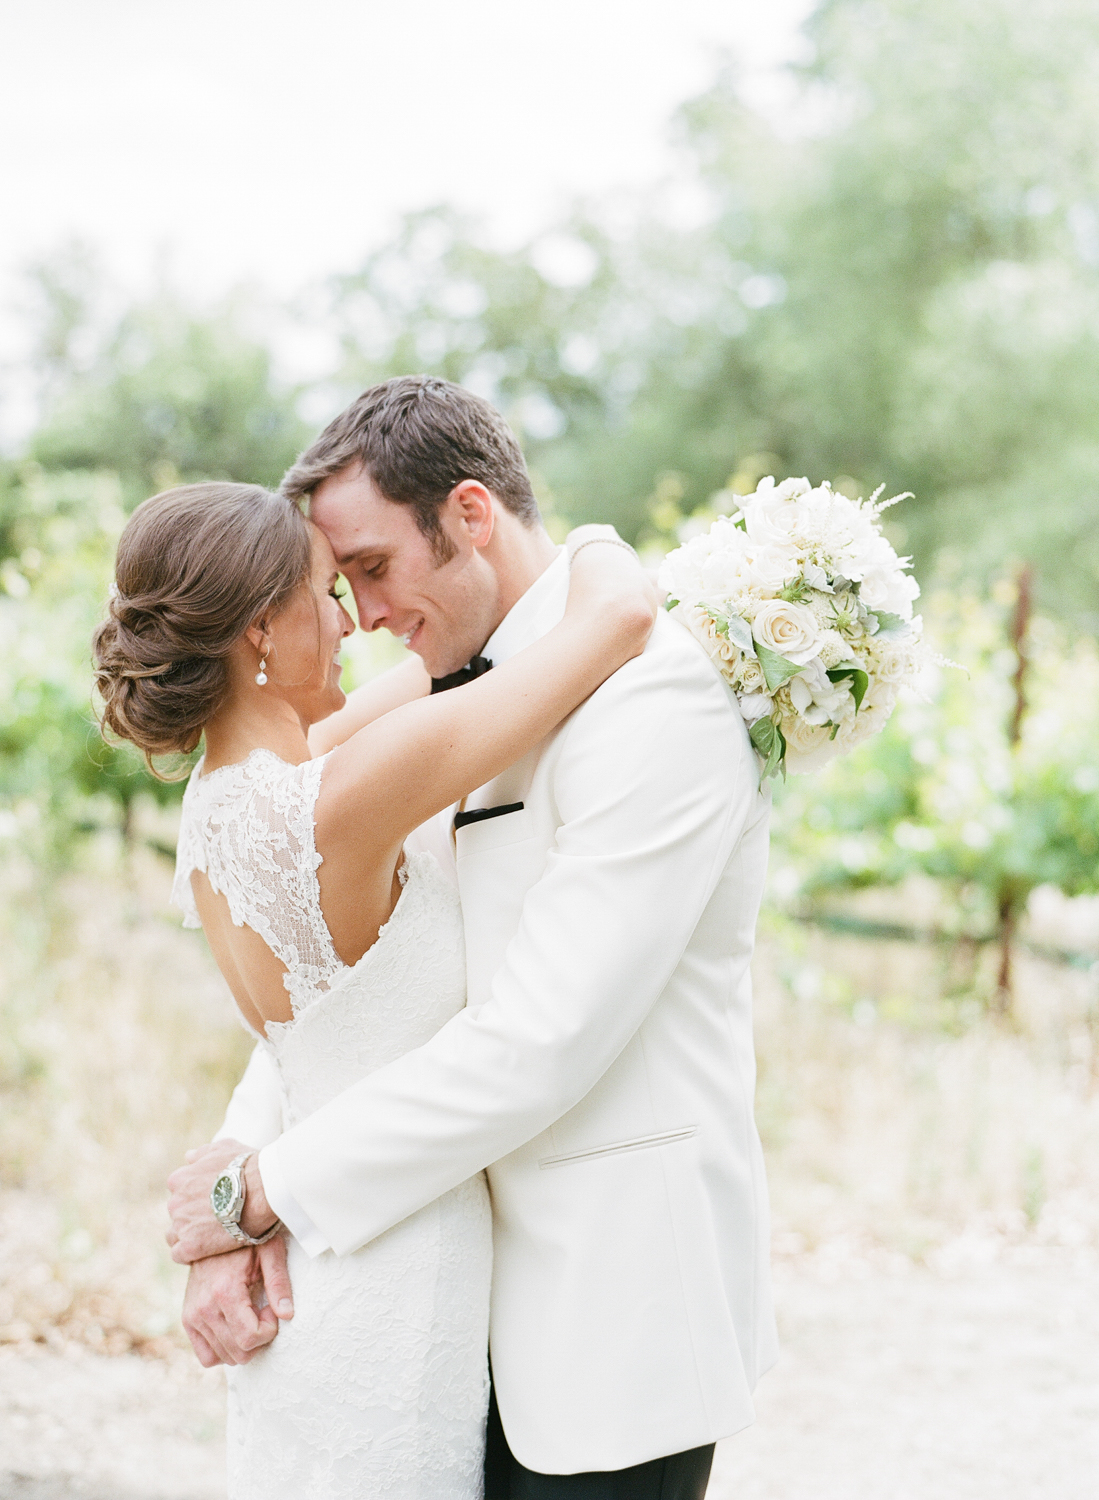 Couple first look before wedding at Vintage Estates in Yountville, CA; Sylvie Gil Photography